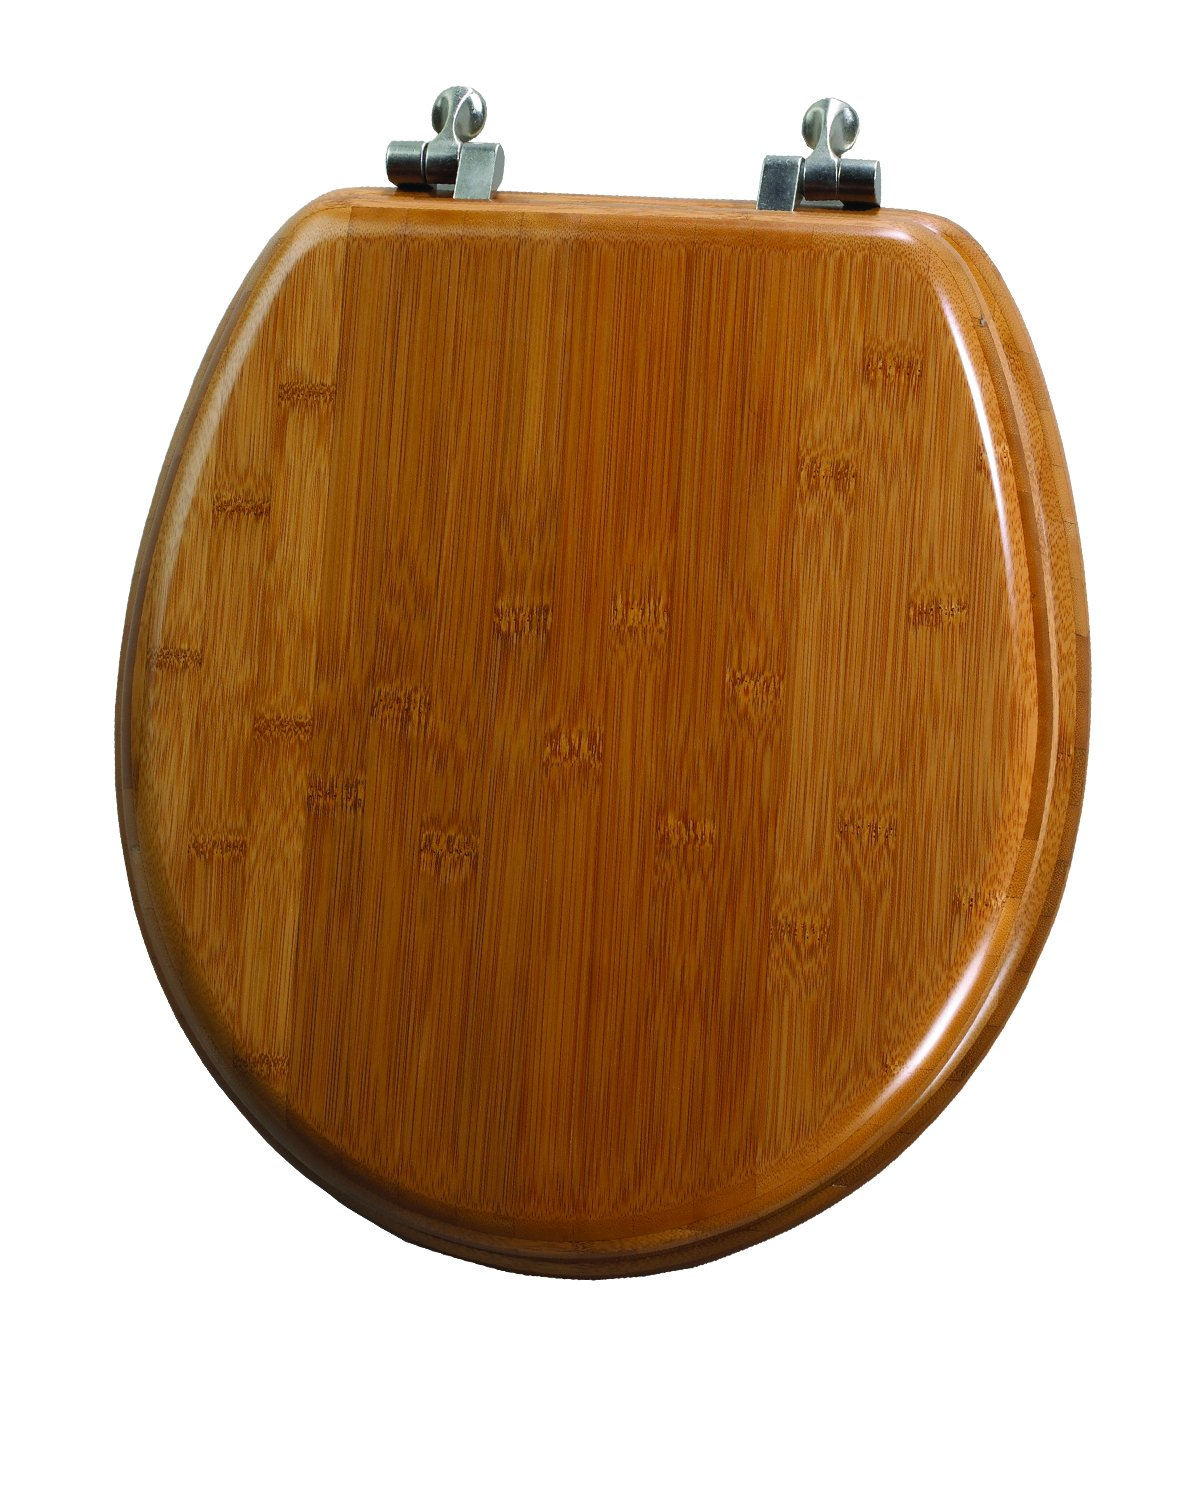 Toilet seats amazon kitchen bath fixtures toilets mayfair solid bamboo toilet seat with brushed nickel hinges round dark bamboo nvjuhfo Image collections